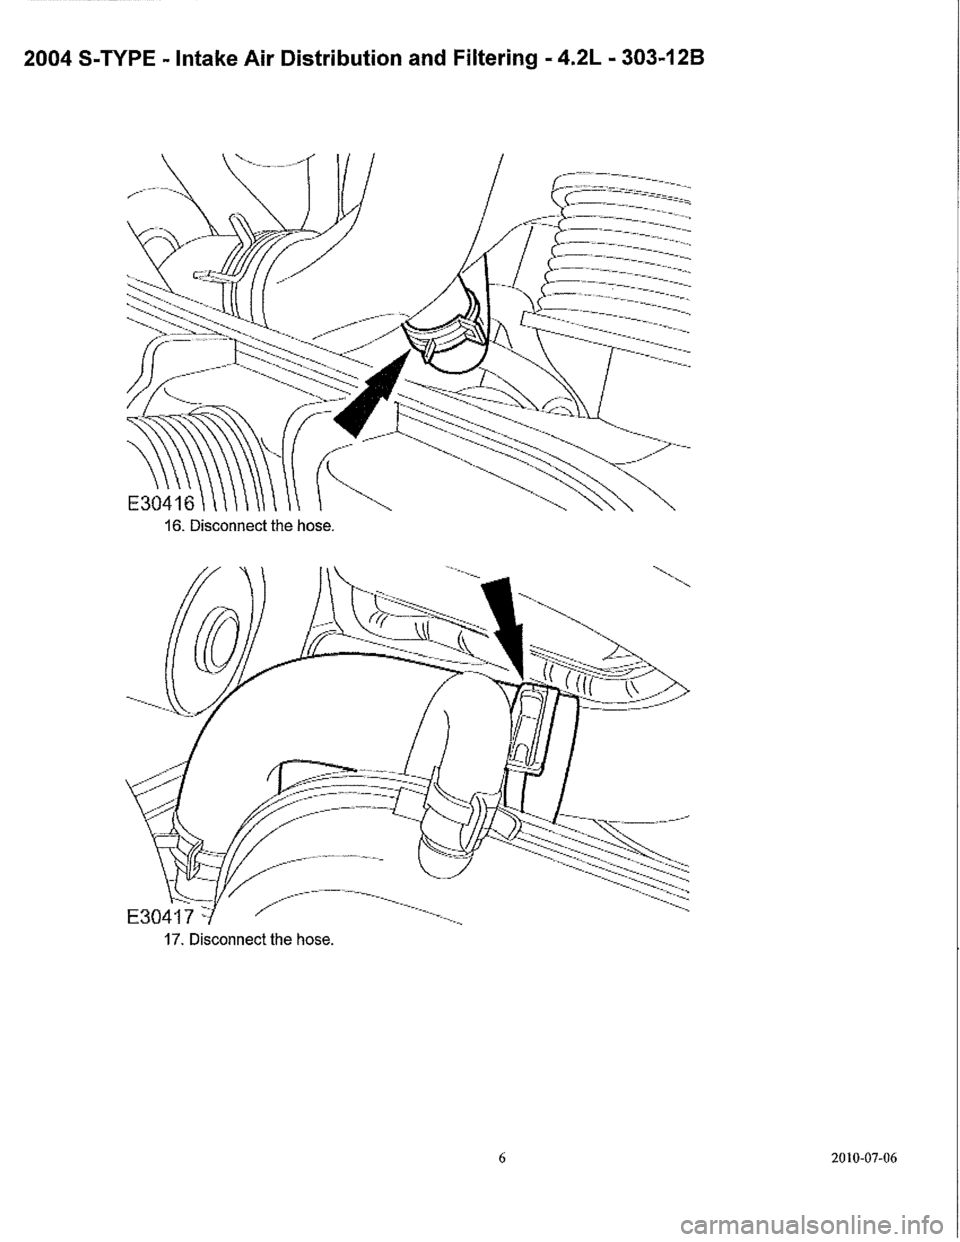 JAGUAR S TYPE 2005 1.G Supercharger Removal And Instalation Manual, Page 8